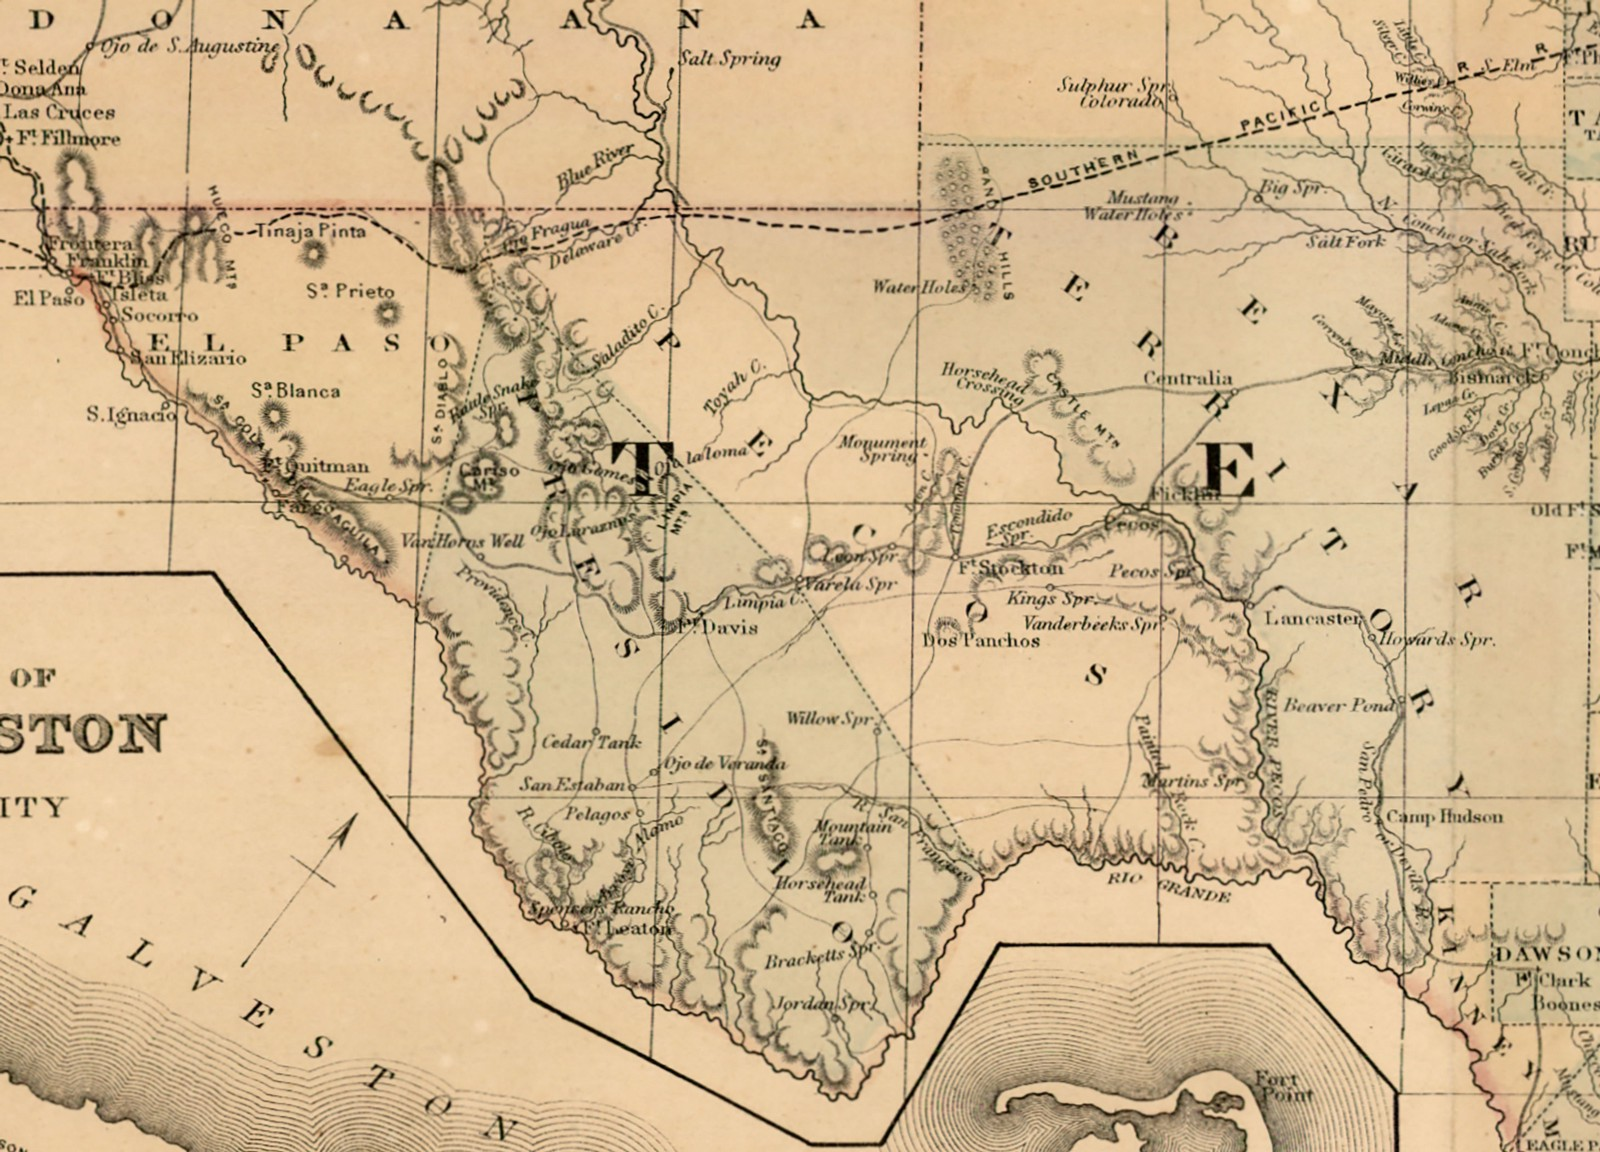 County Map of the State of Texas 1873 by WH Gamble